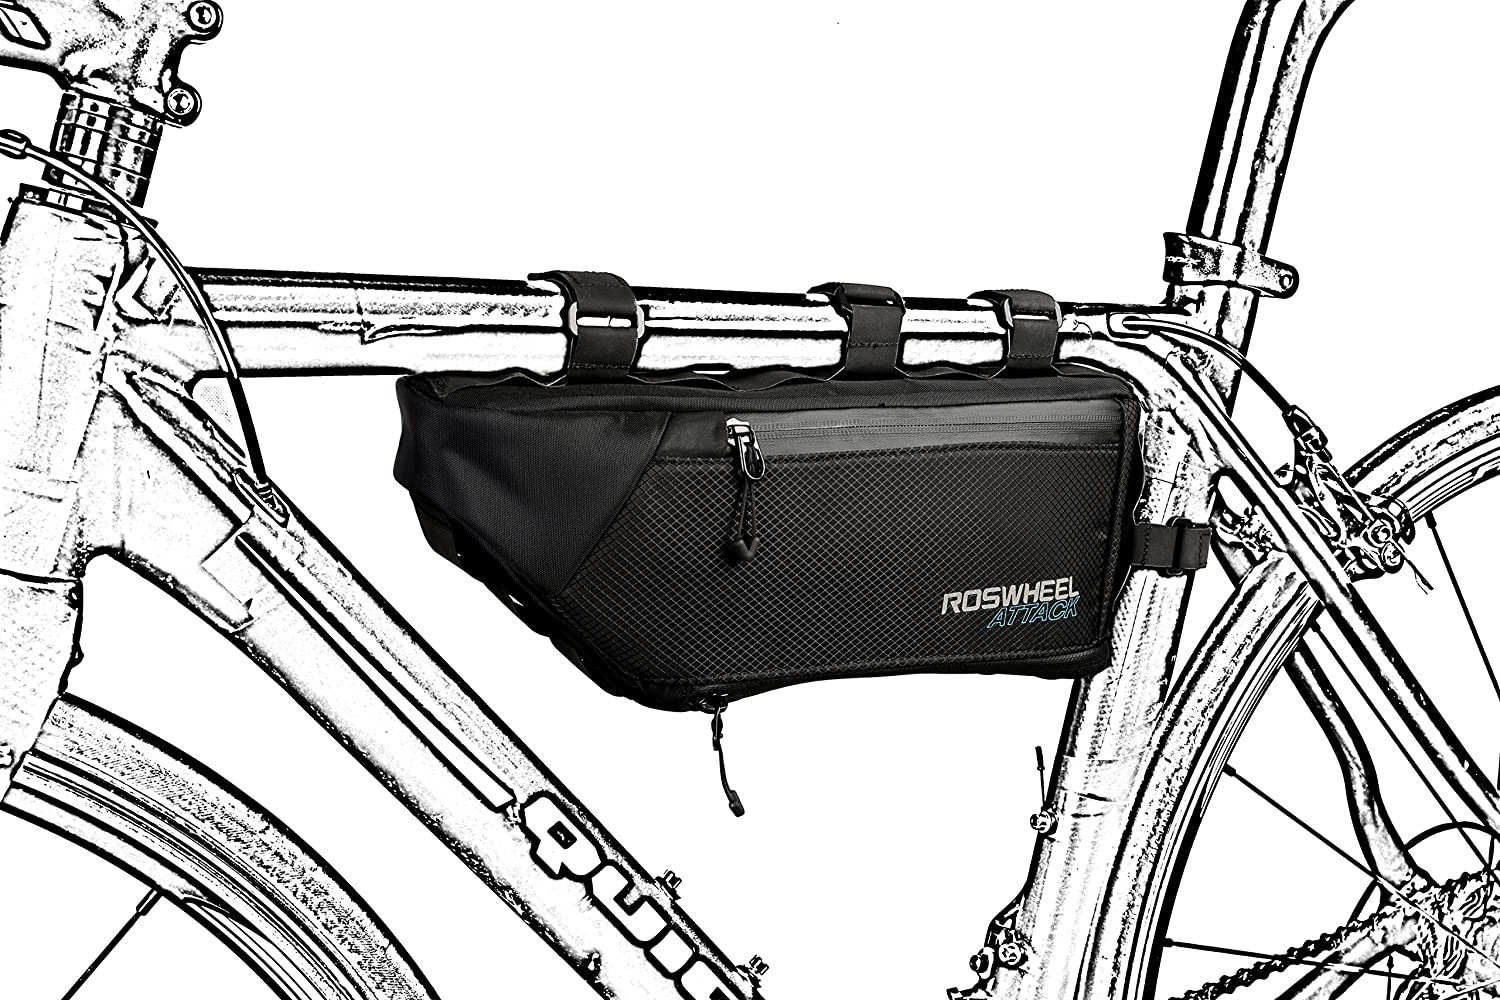 MTB Bicycle Top Tube Bag CestMall Bike Bag 1L Capacity Waterproof Cycling Front Frame Pannier Pouch Carrier Bags Bicycle Accessories for Outdoor